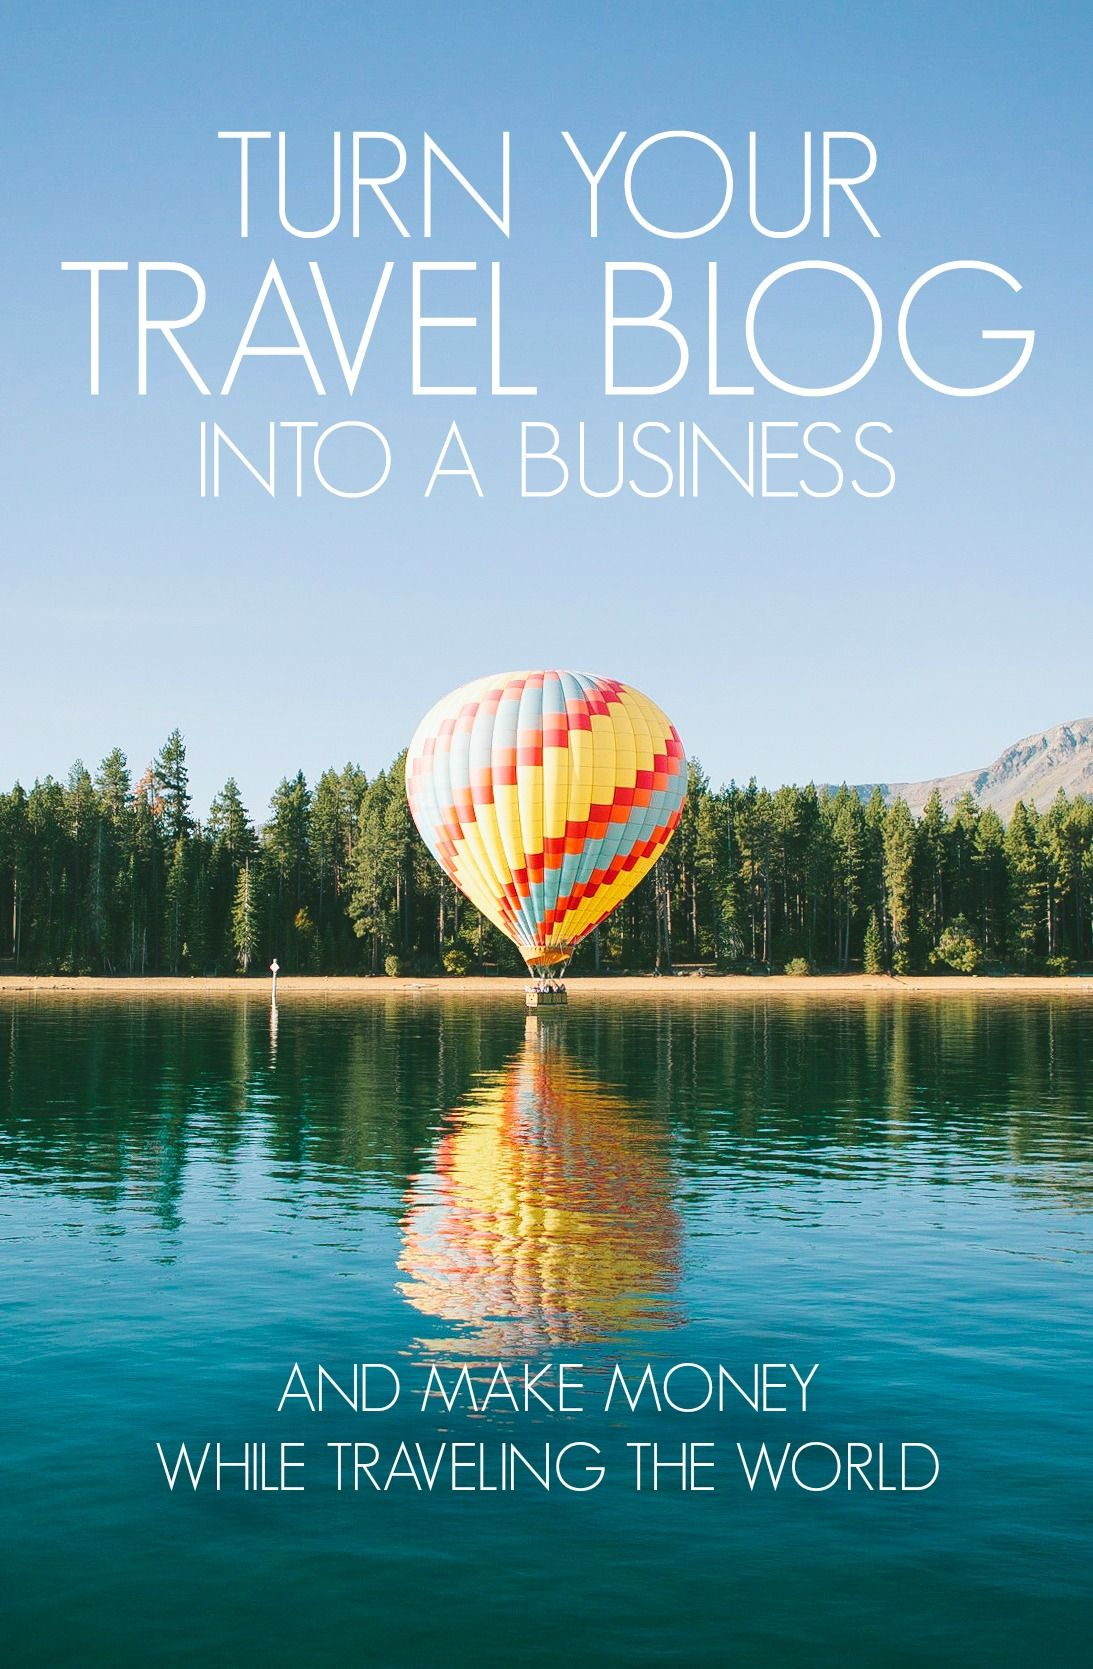 join the travel blog success community and learn how to make money